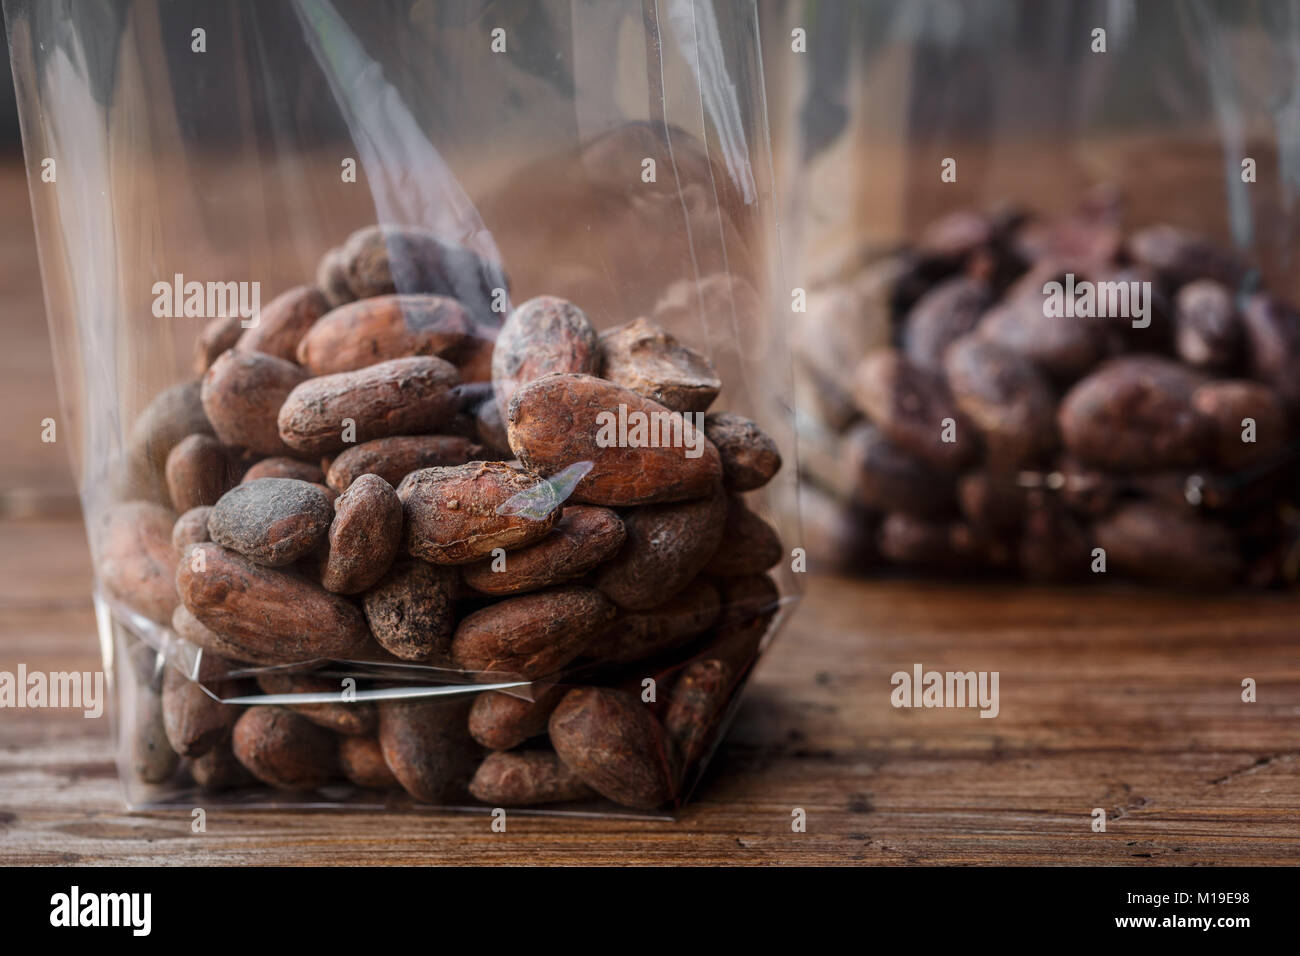 Cocoa beans in plastic bag - Stock Image